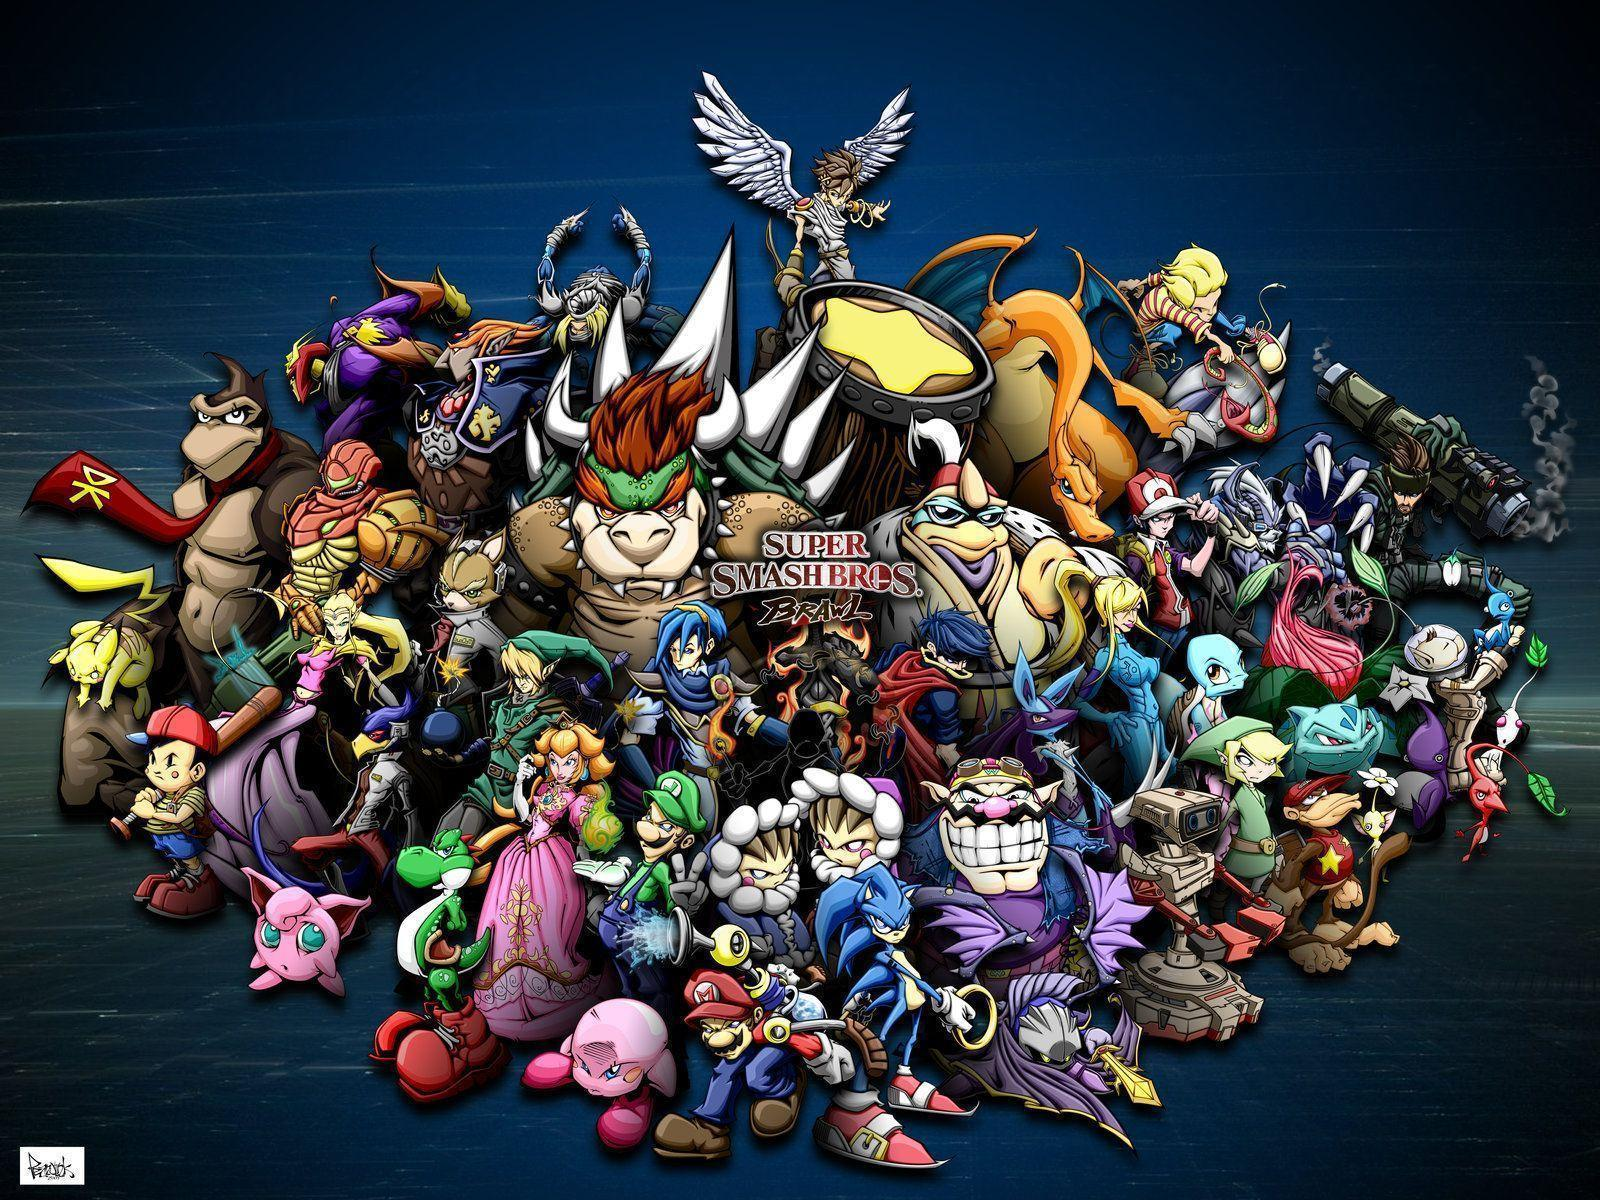 Wii U Screen Savers : Super smash bros wallpapers wallpaper cave